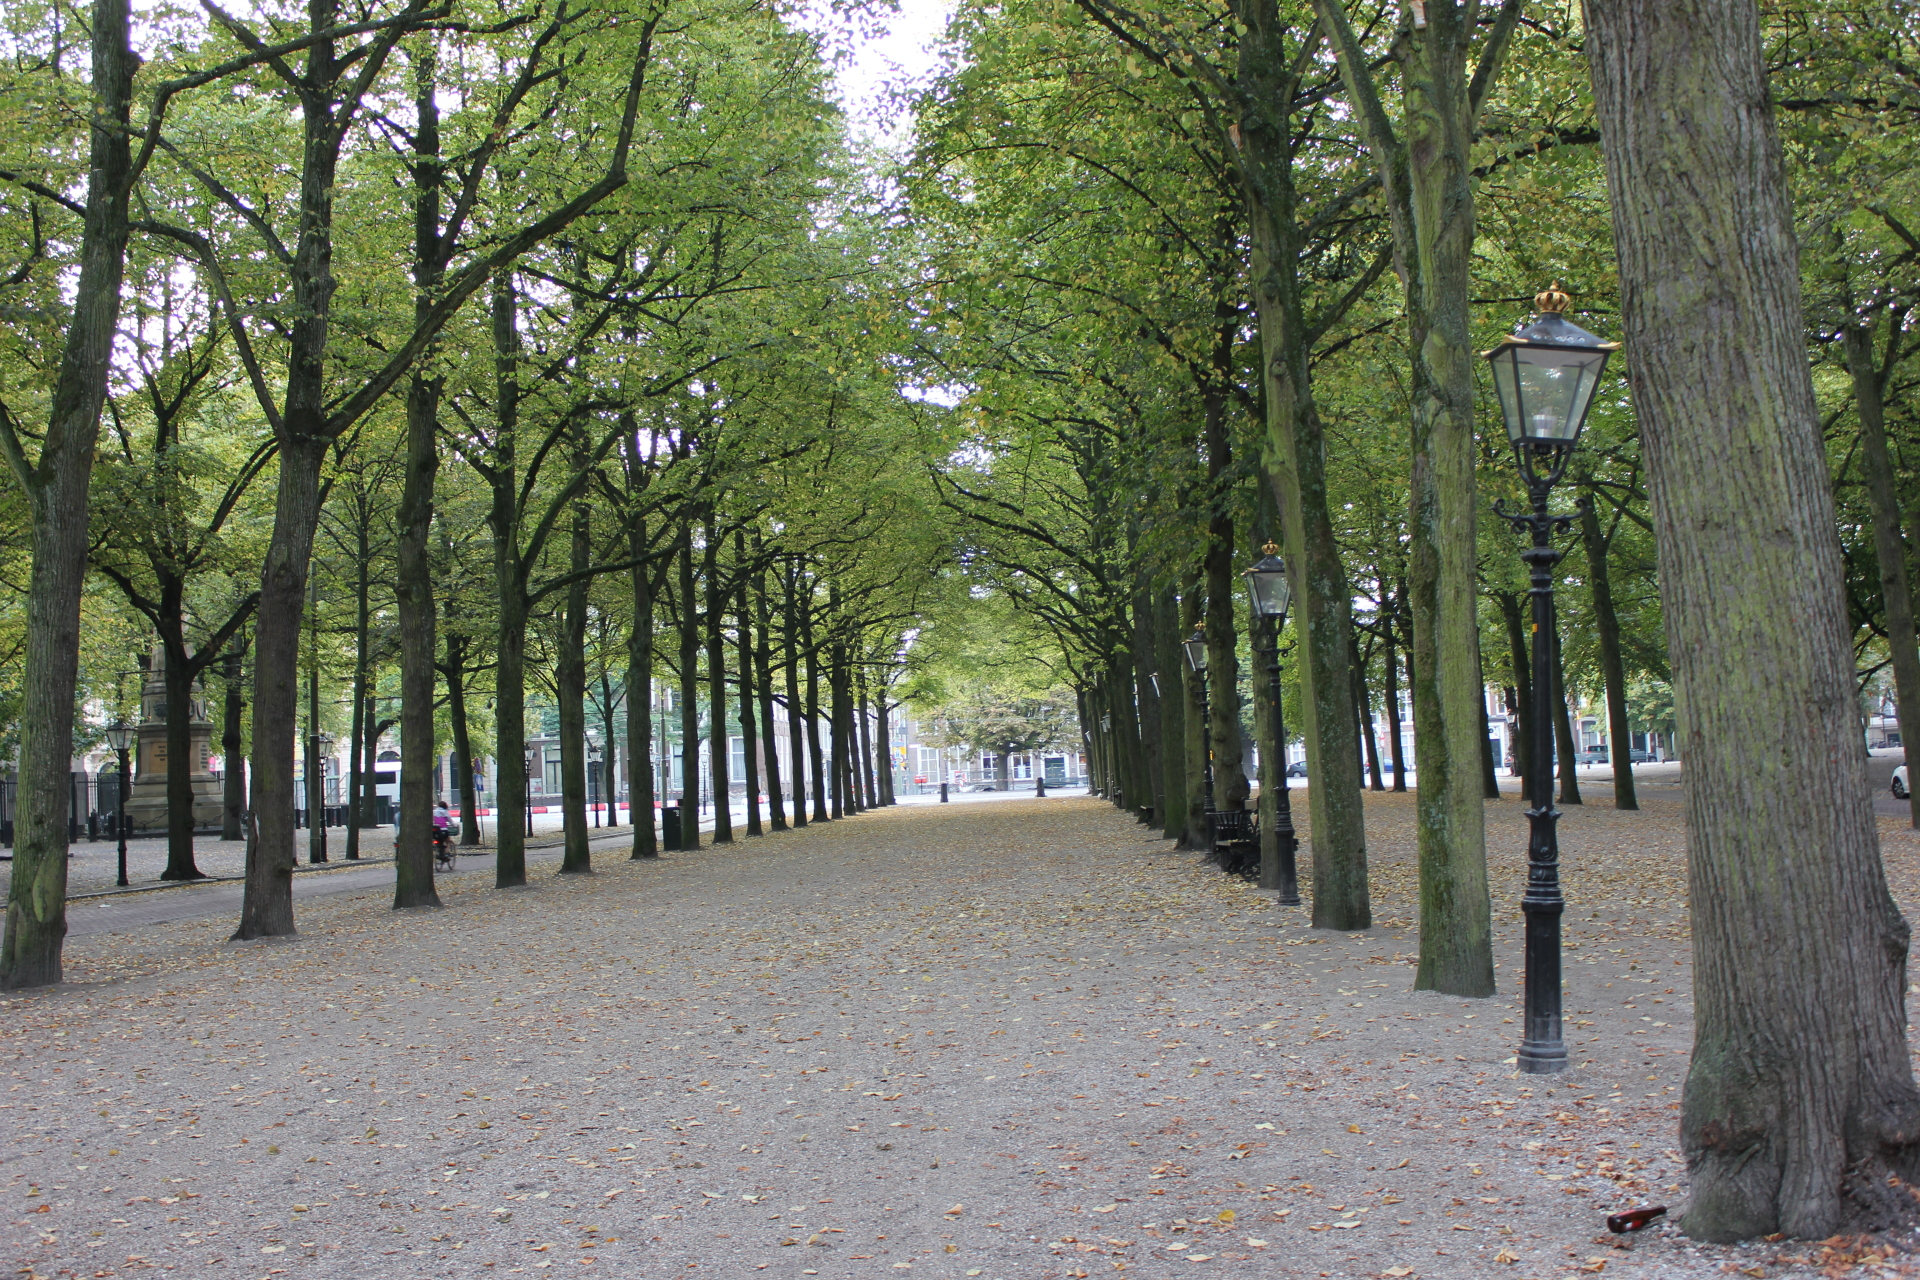 The park in front of The Hotel Des Indes